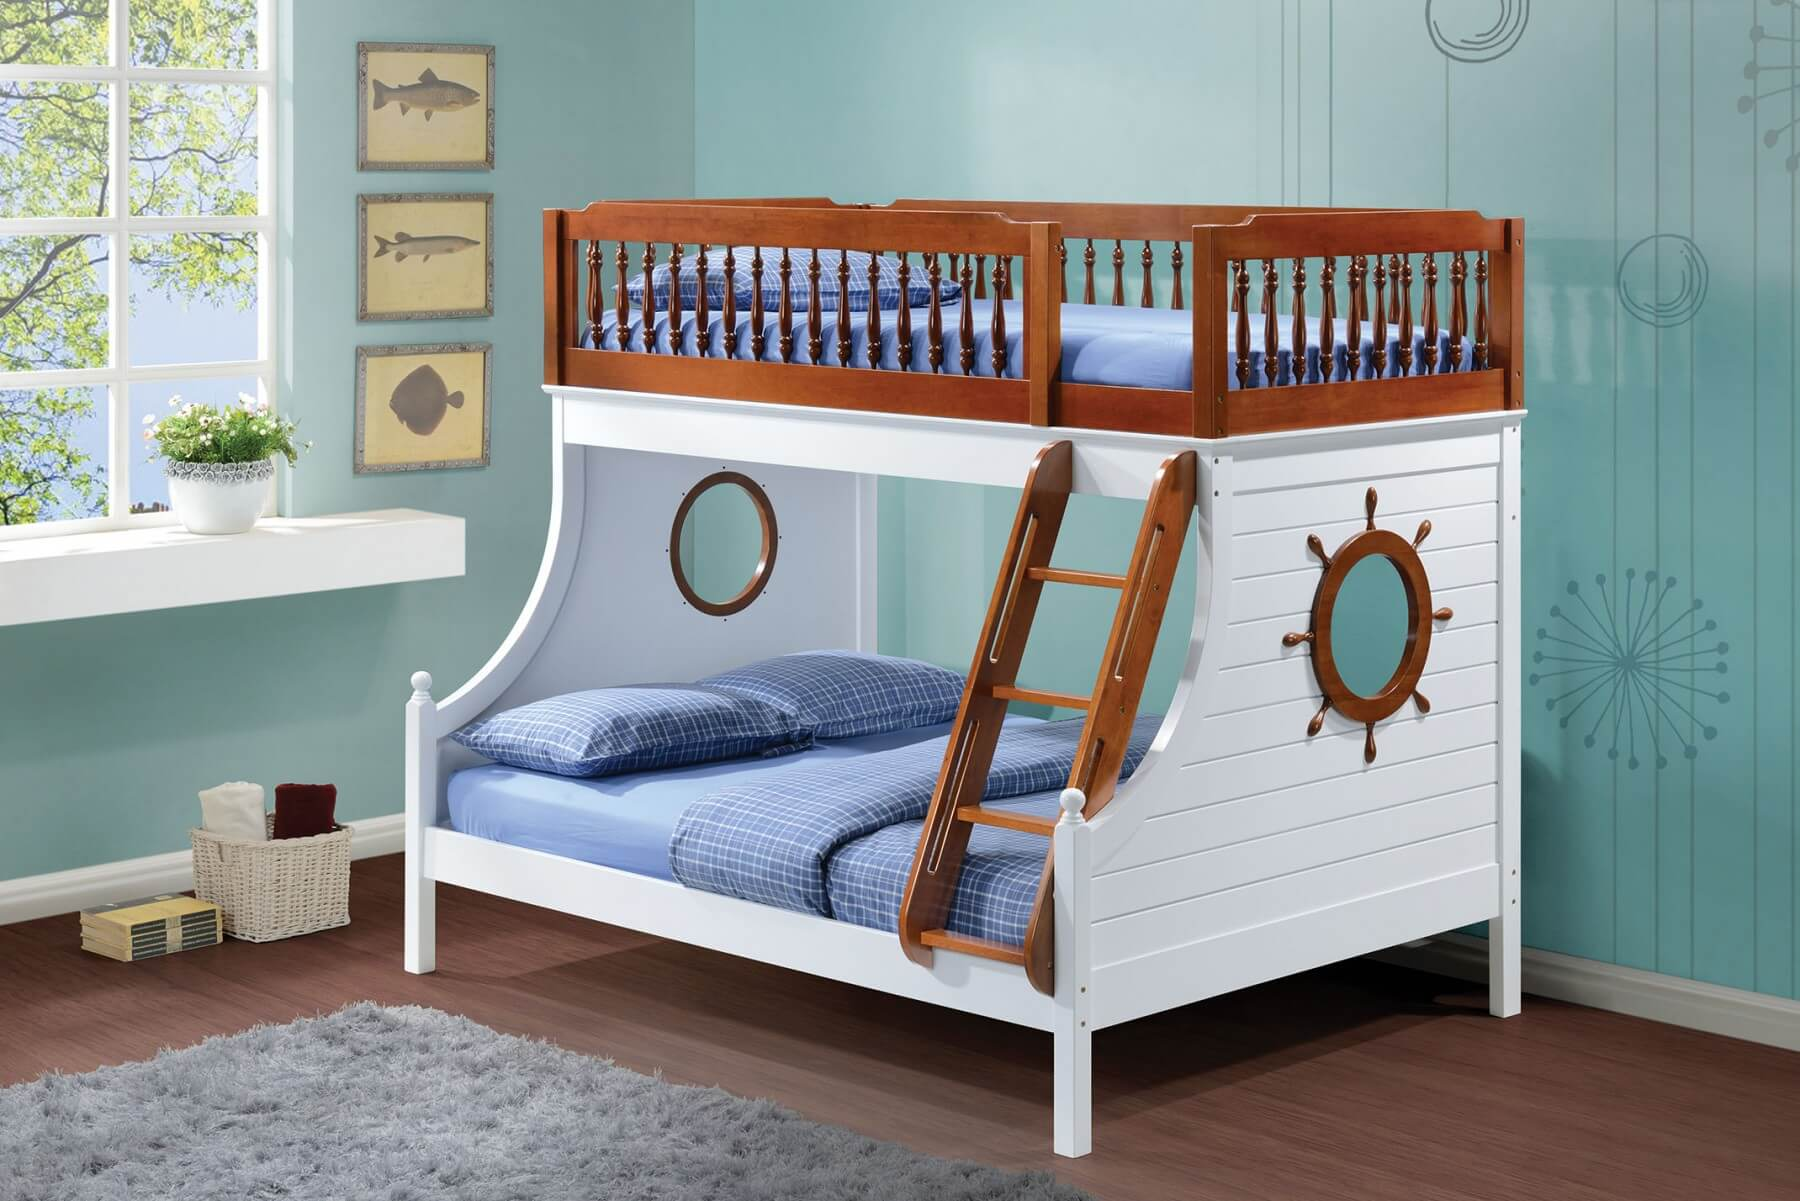 Farah Full Twin Size Bunk Bed Buy line at Best Price SohoMod